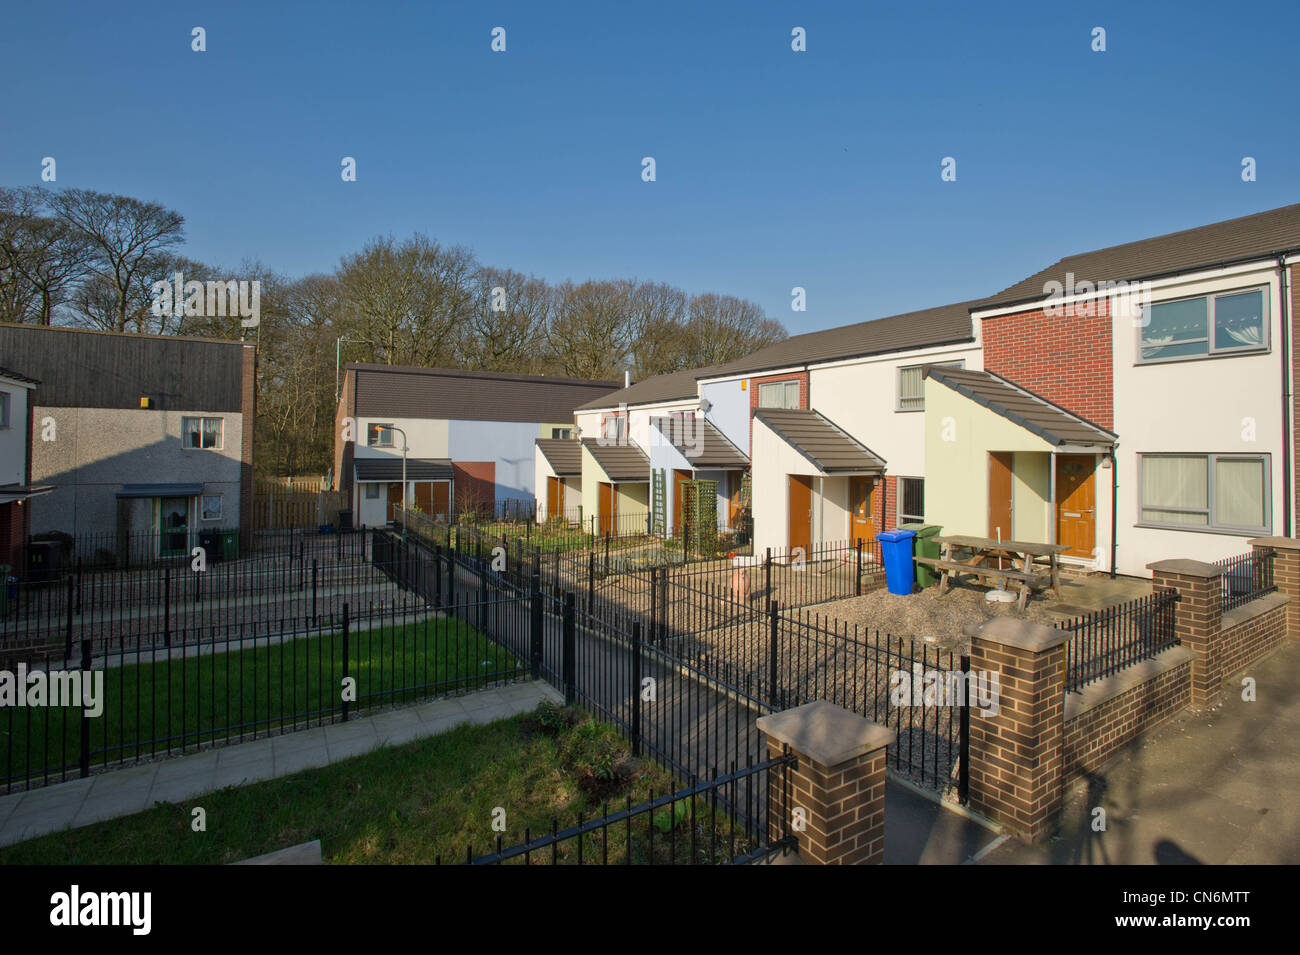 Refurbished housing in Sheffield with gardens - Stock Image